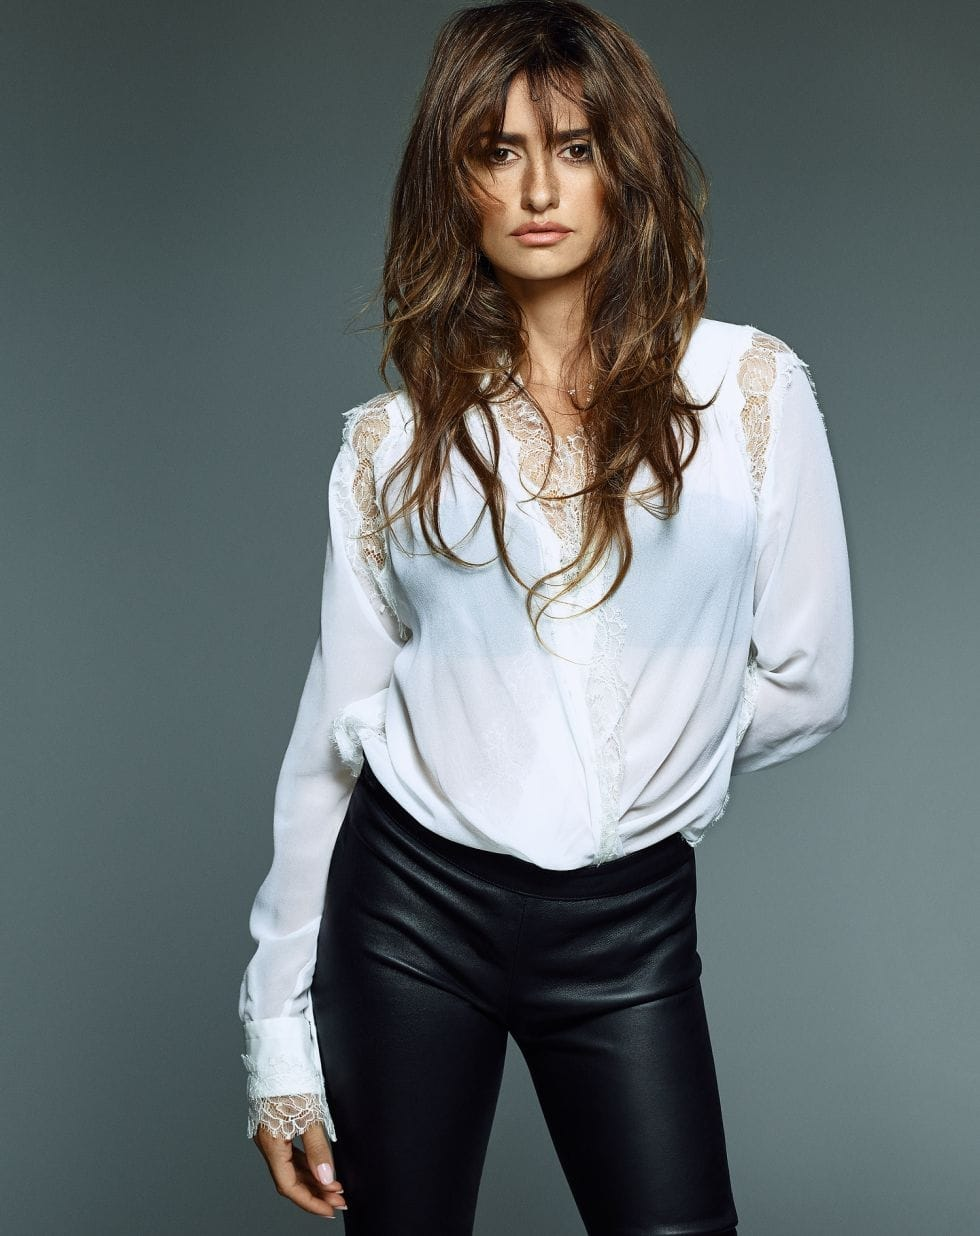 Picture of Penélo... Penelope Cruz